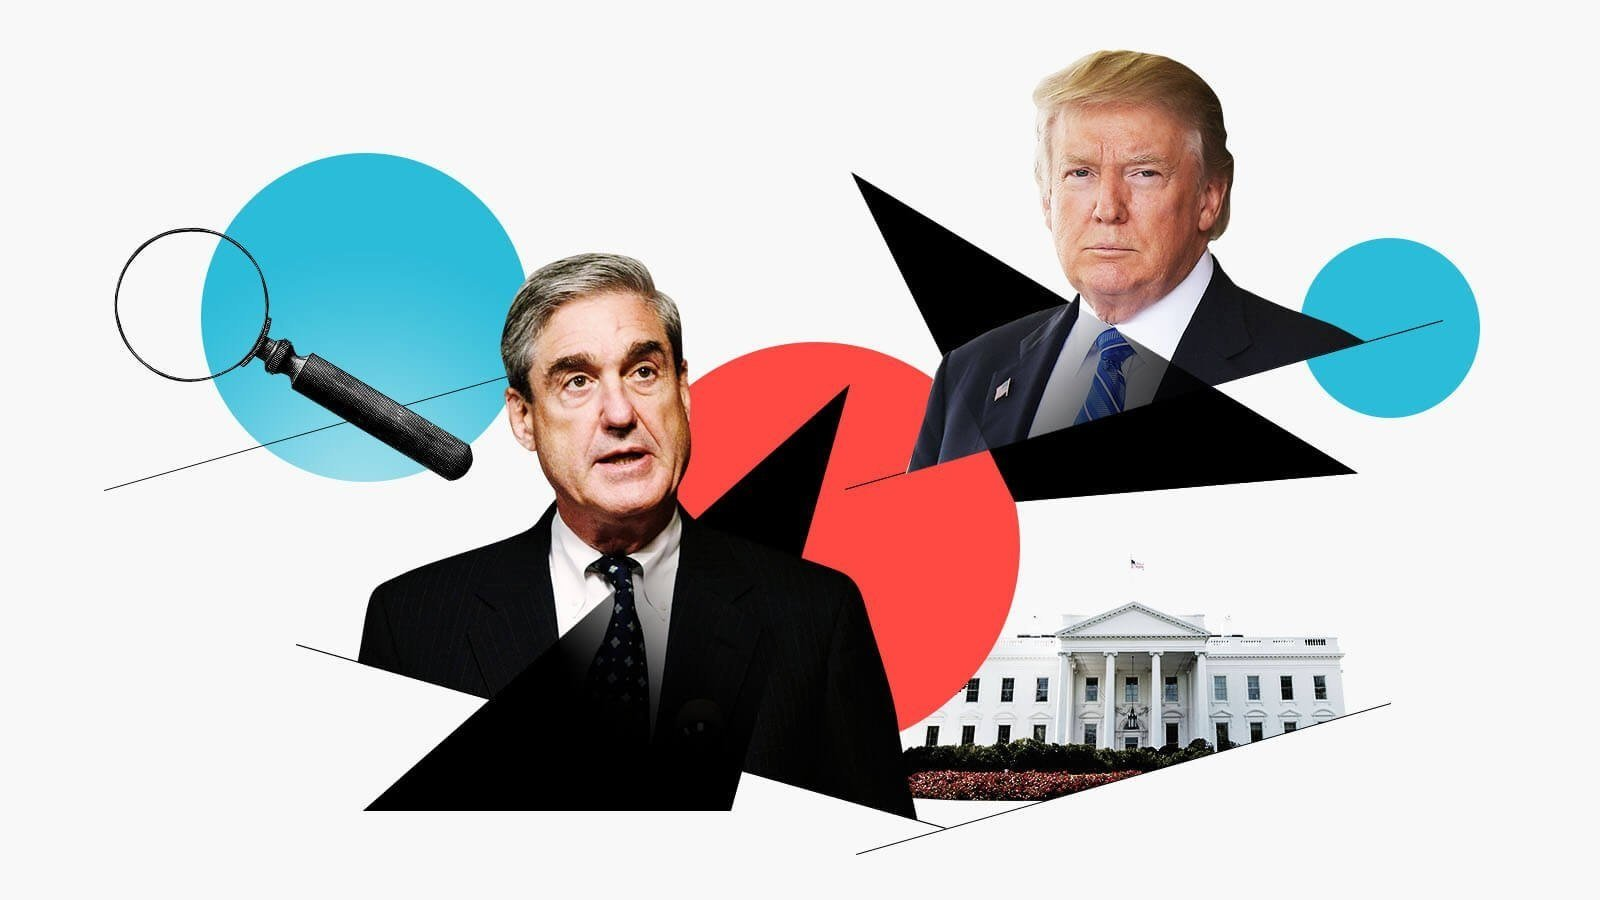 Thursday marks one year since special counsel Robert Mueller was appointed to investigate Russian meddling in the 2016 US election. Mueller took over an investigation that was first opened by since-fired FBI Director James Comey in July 2016, during...